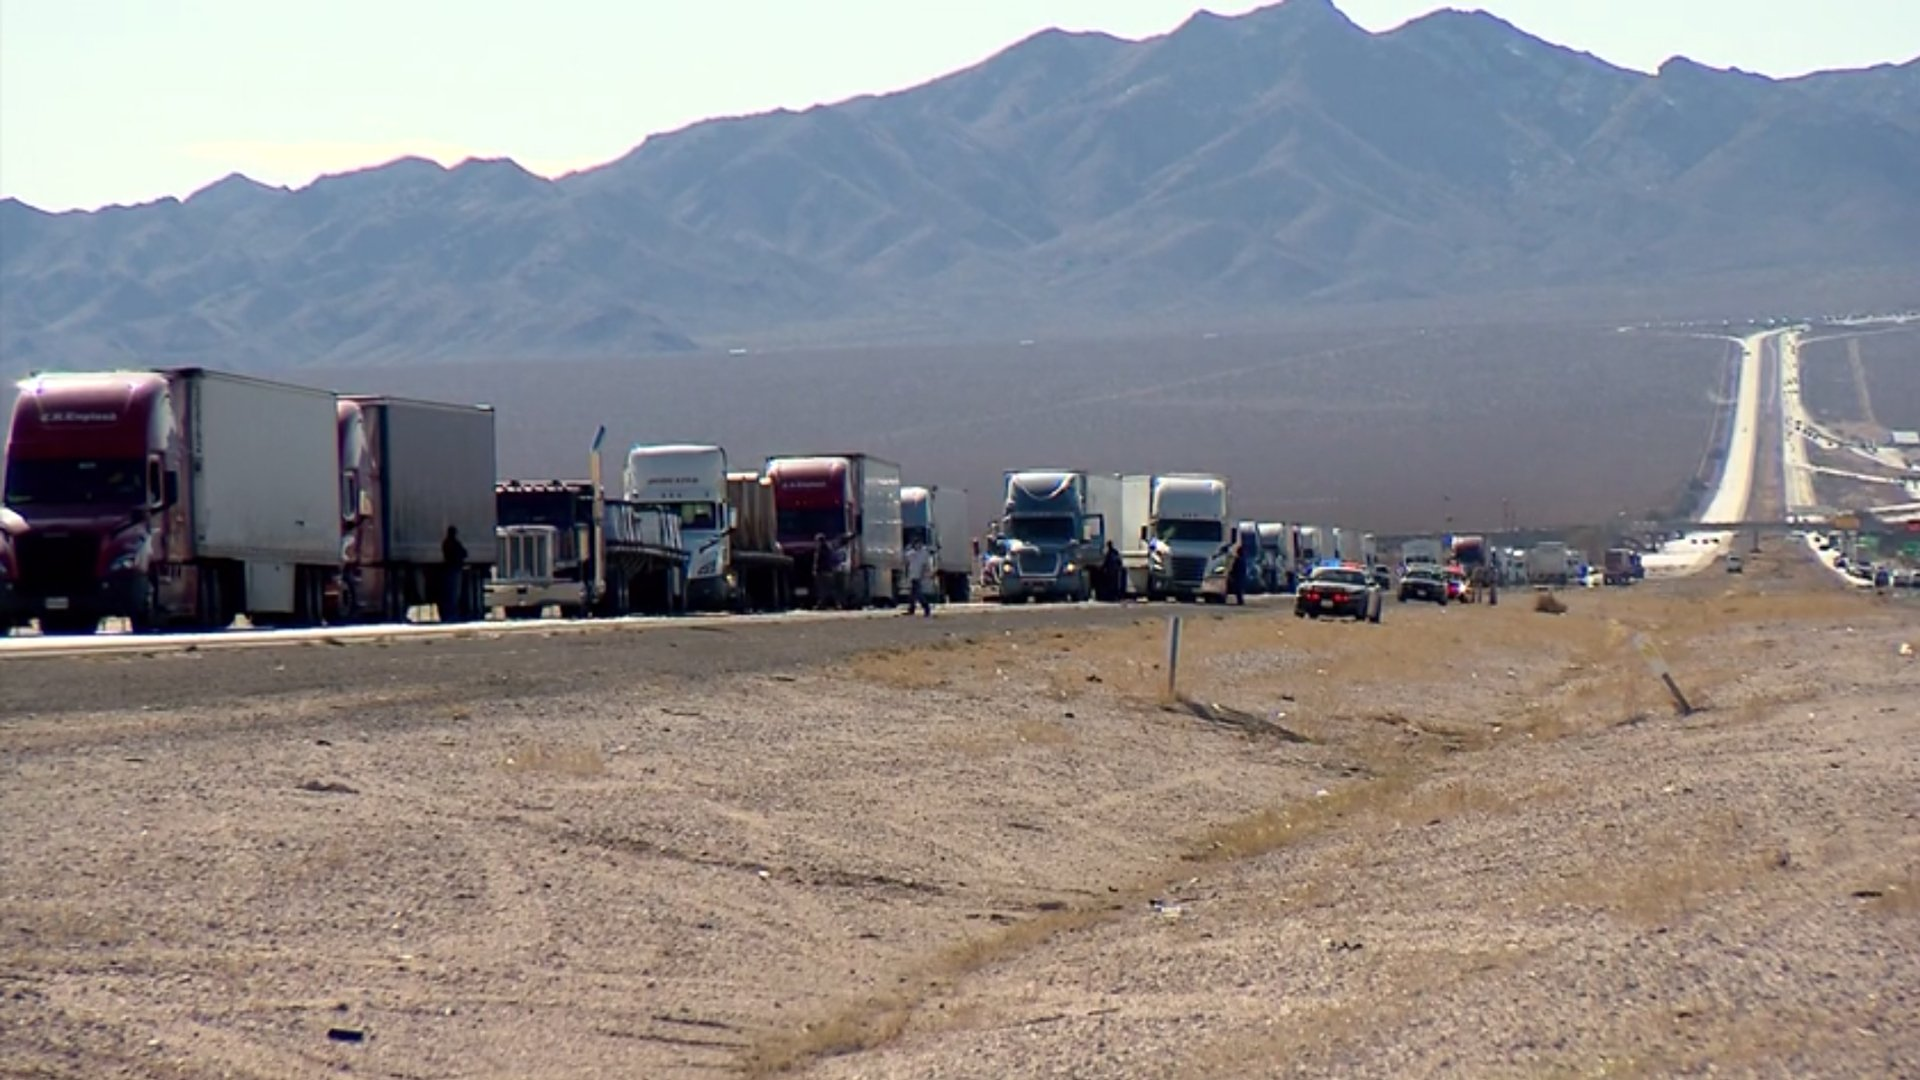 Traffic backed up for some 8 miles on the northbound 15 Freeway at the Nevada state line after a police shooting on Jan. 8, 2019. (Credit: KLAS)